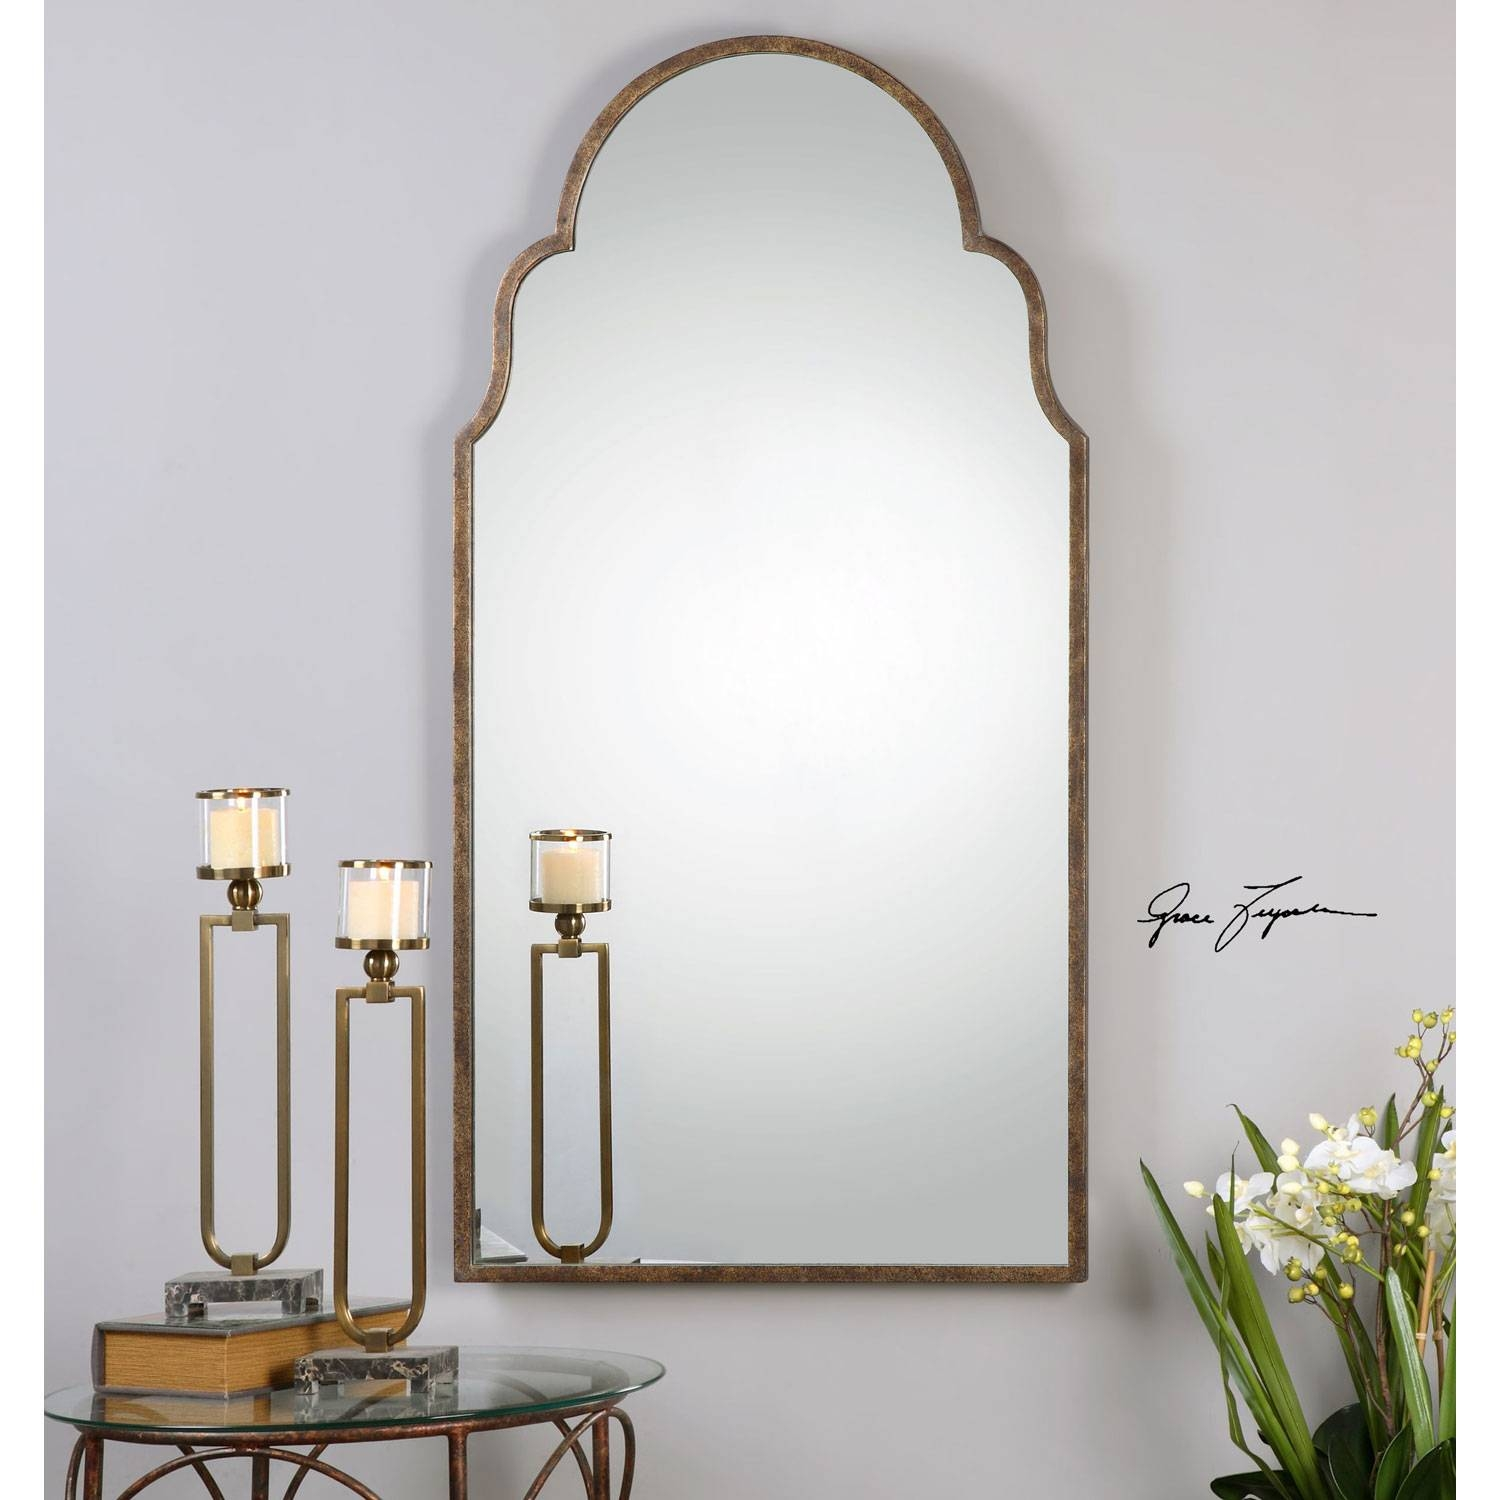 Brayden Rust Bronze Arch Mirror Uttermost Wall Mirror Mirrors Home inside Frameless Arched Mirrors (Image 4 of 25)